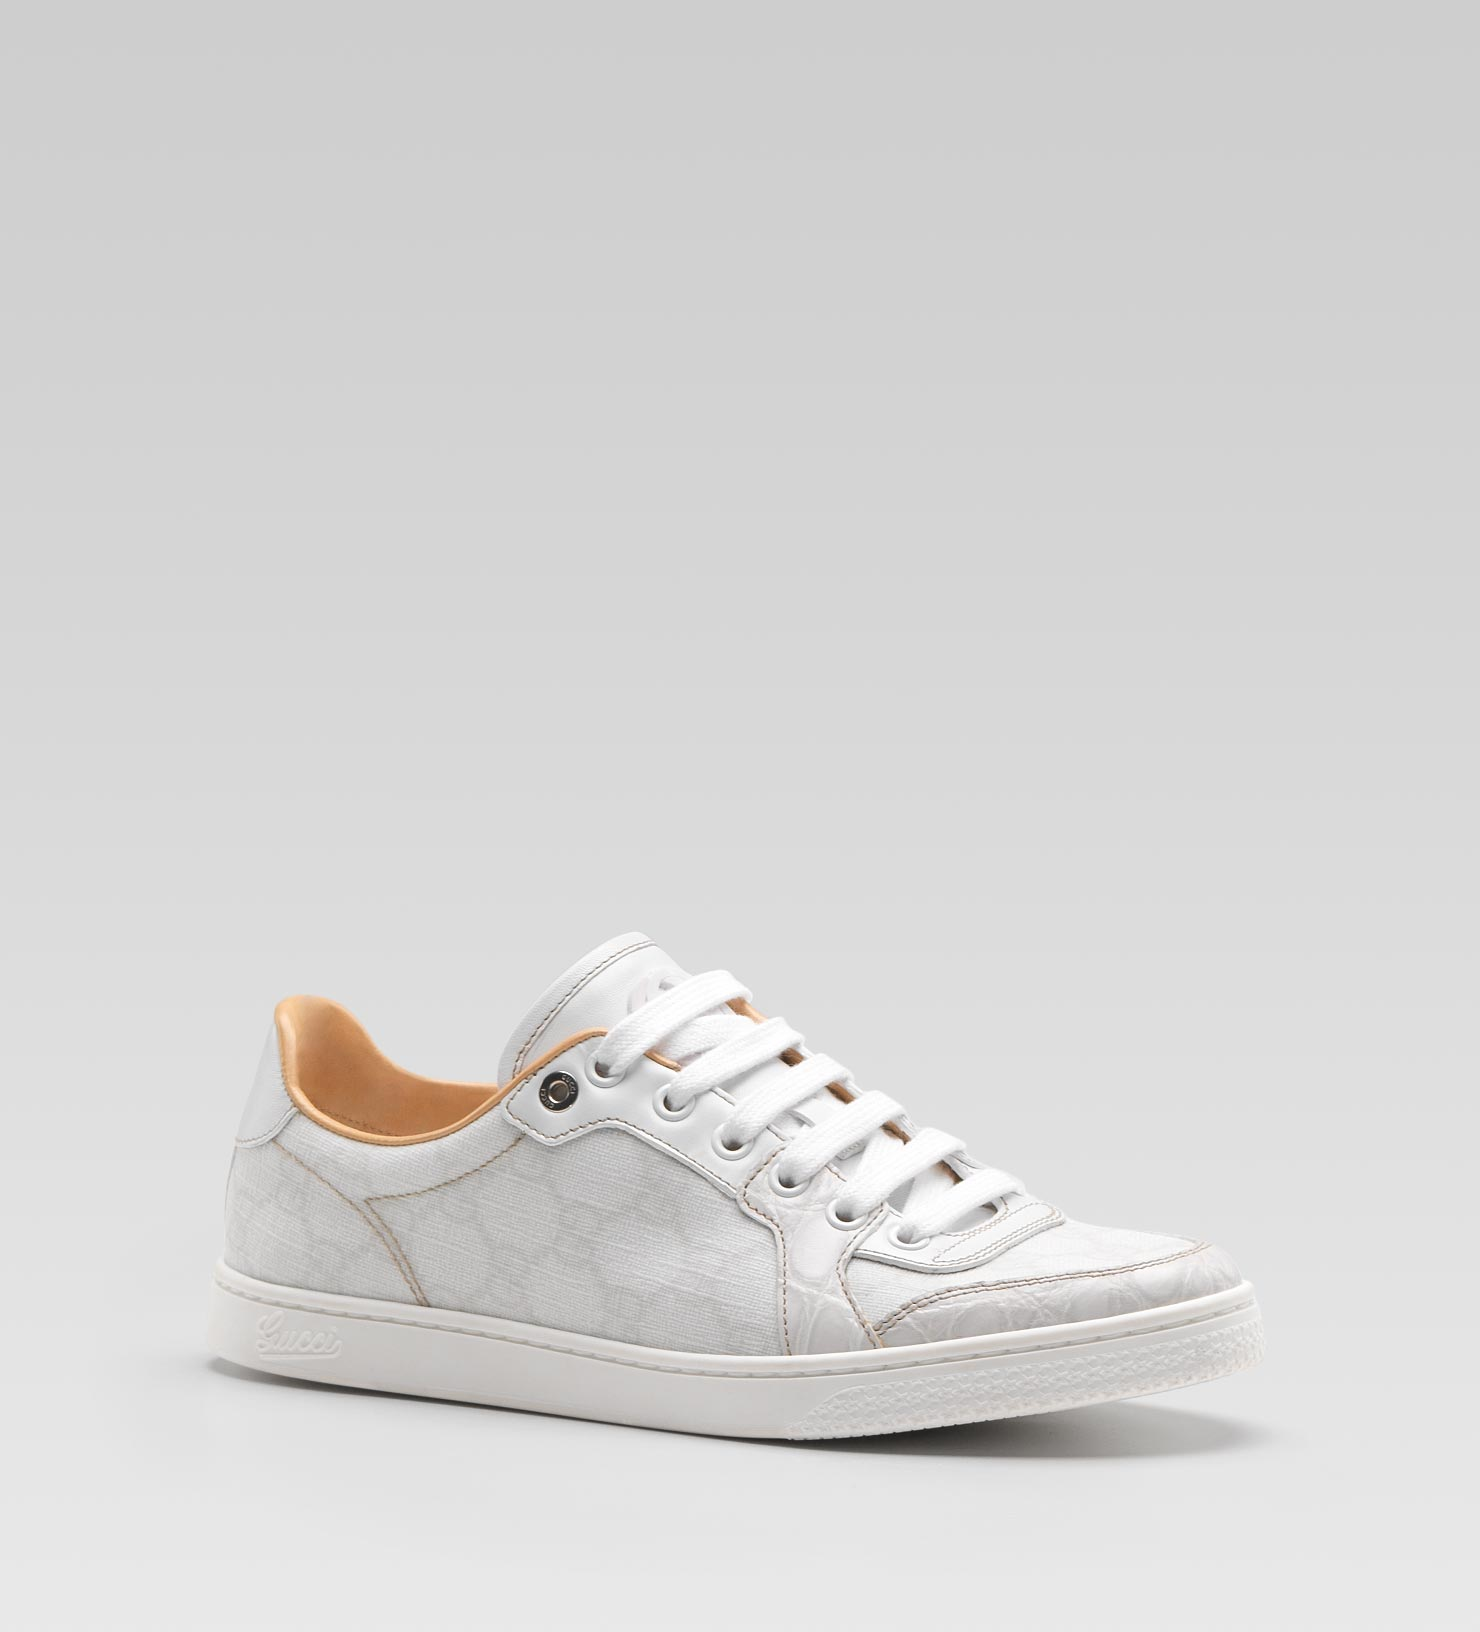 Lyst - Gucci Coda Low Laceup Sneaker with Interlocking G Detail in White 324523fe95